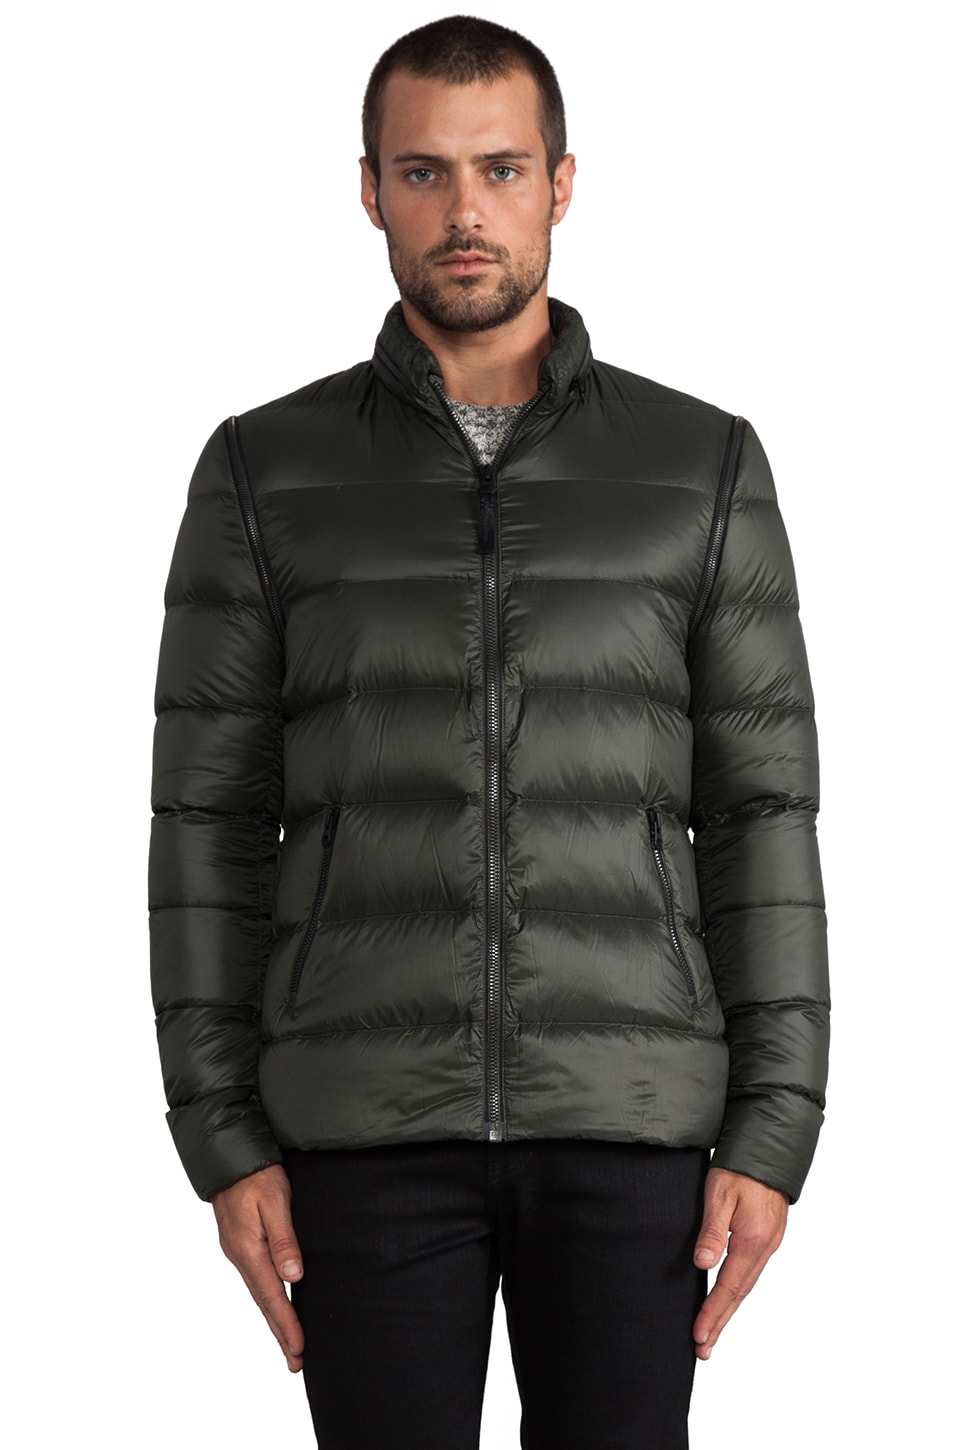 Mackage Lawrence Puffer Jacket in Army